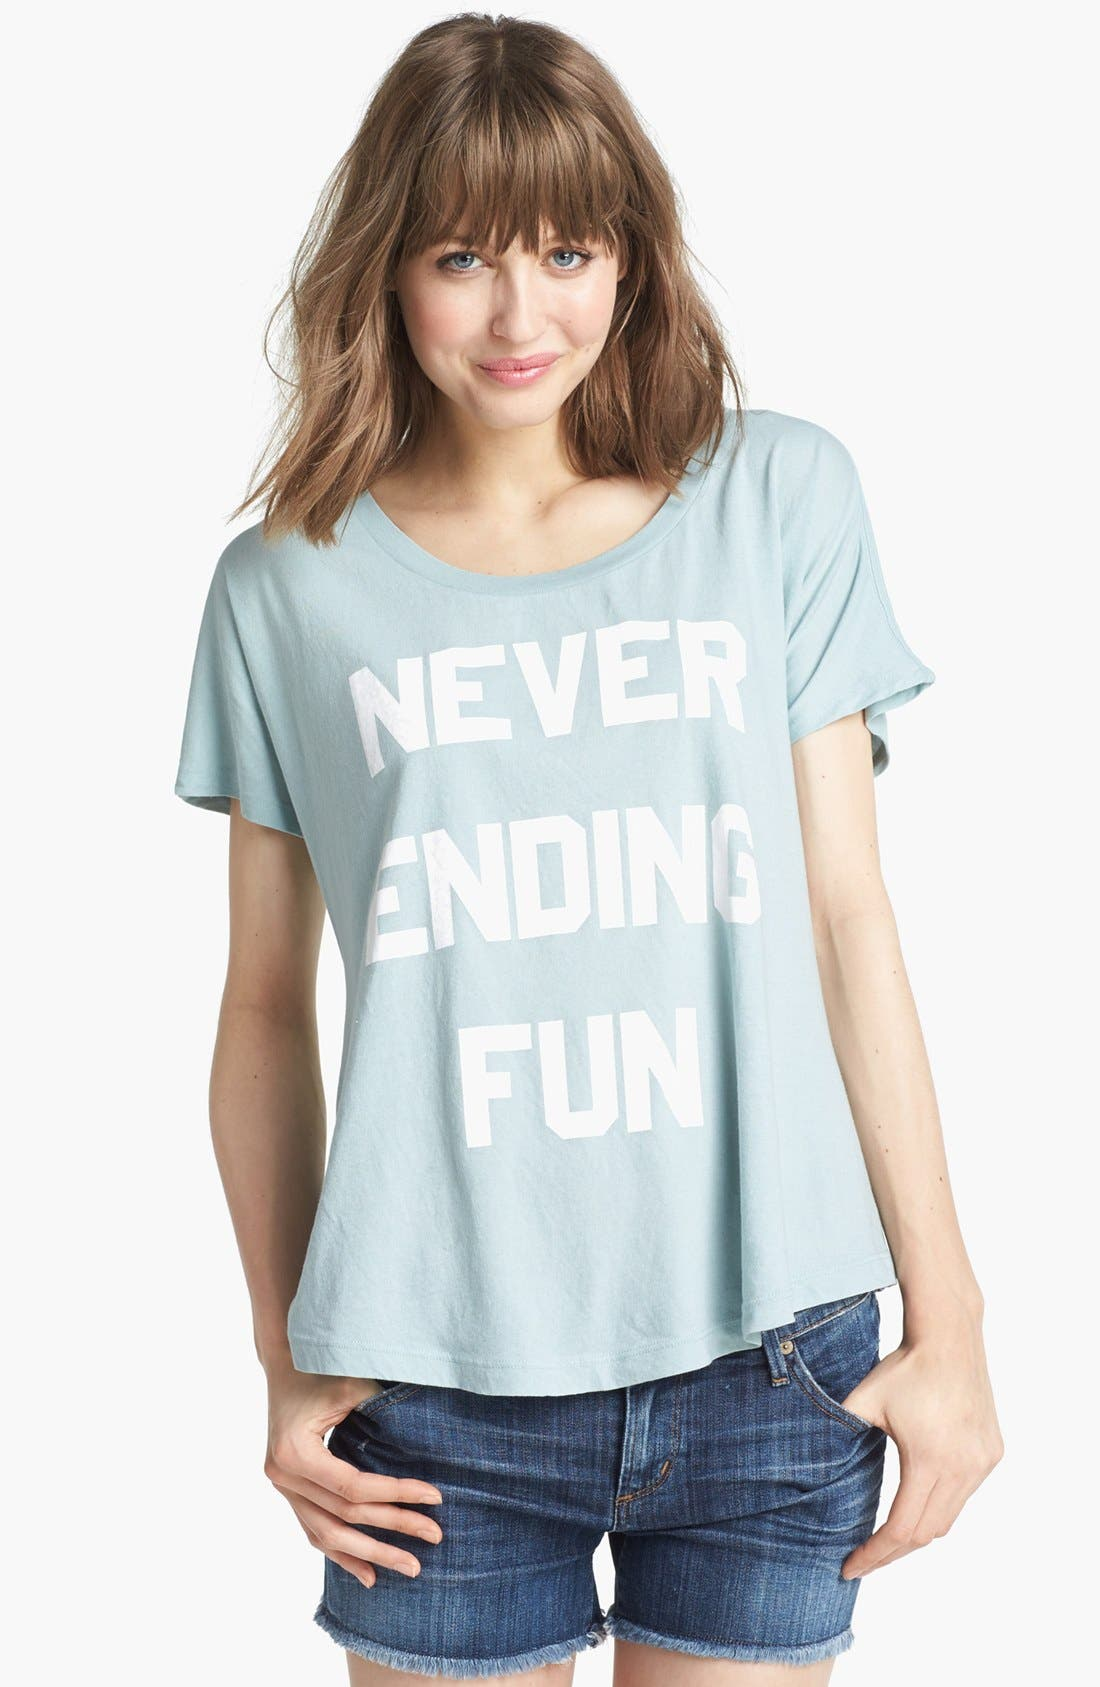 Alternate Image 1 Selected - Wildfox 'Never Ending Fun' Tee